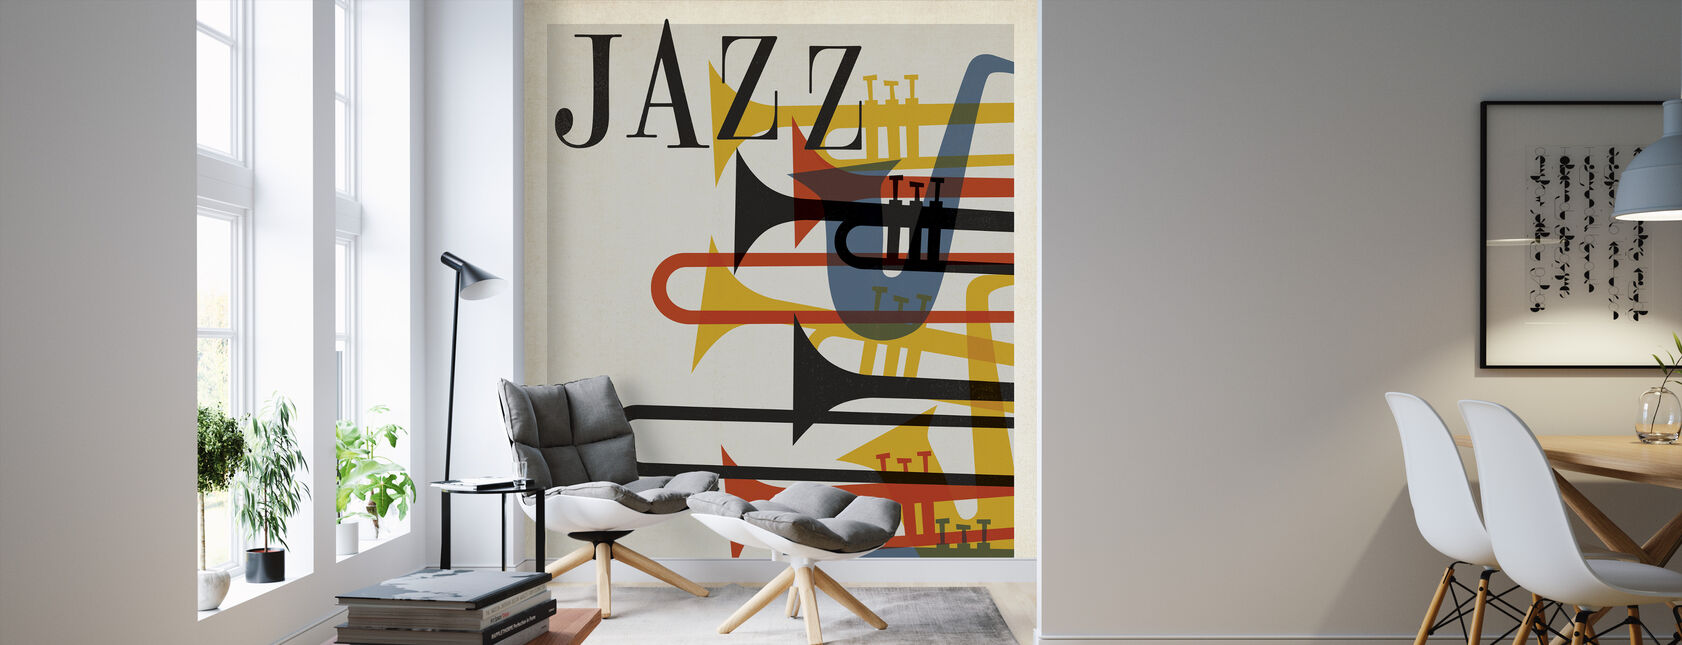 Jazz - Wallpaper - Living Room